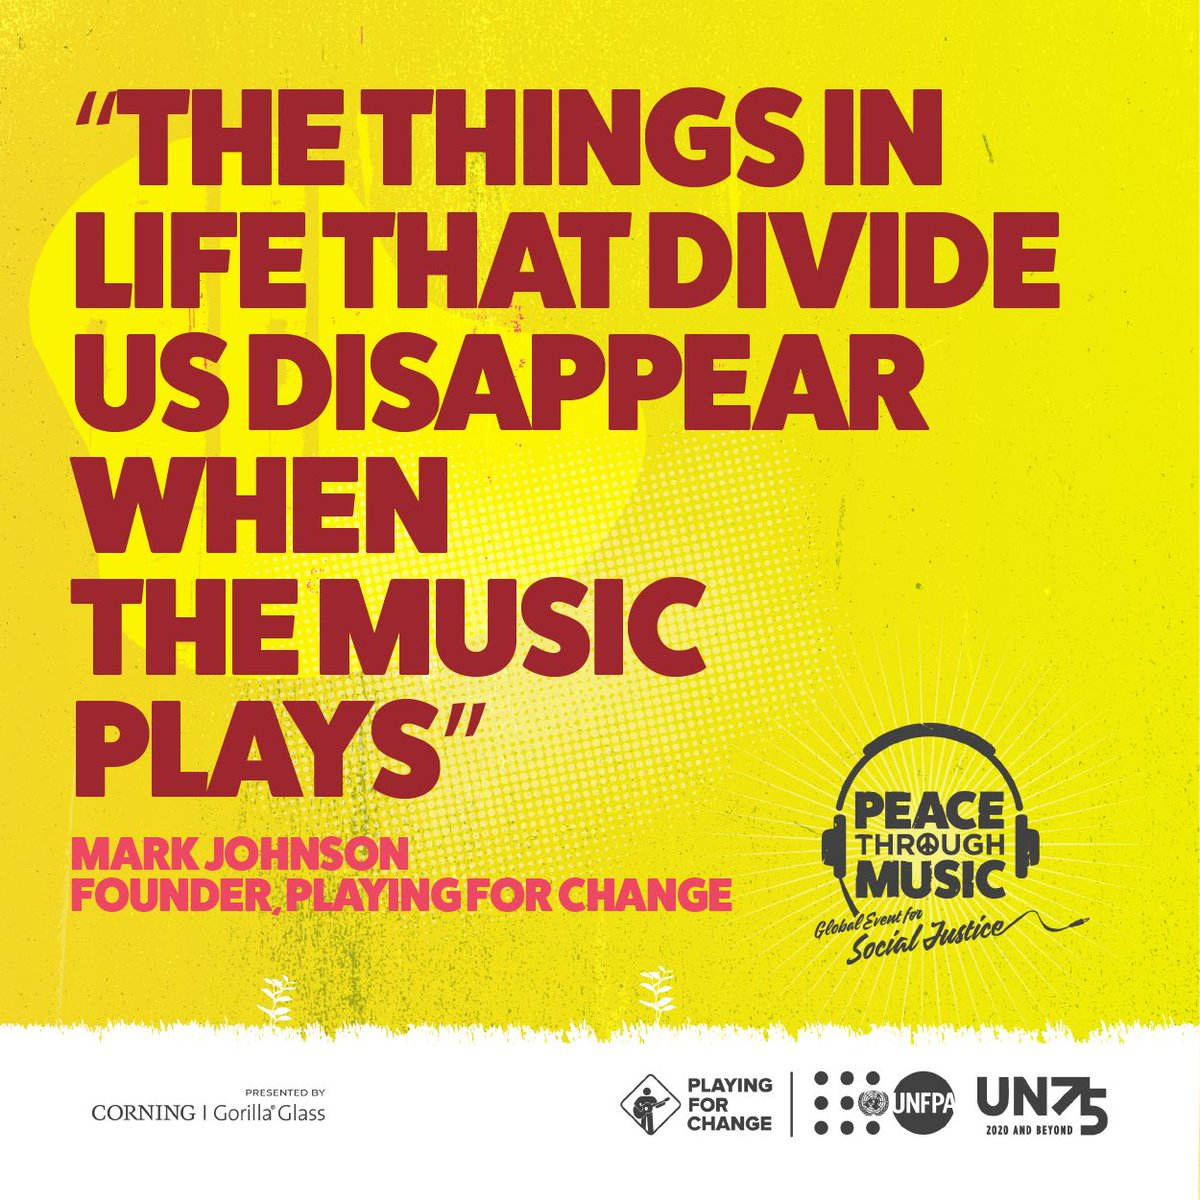 Now is the time to act and leave our differences behind!    On December 1st, join me and be part of #PeaceThroughMusic: a global event to inspire the world to act for peace and justice for everyone.      #LeavingNoOneBehind #GivingTuesday #Gibson #epiphone